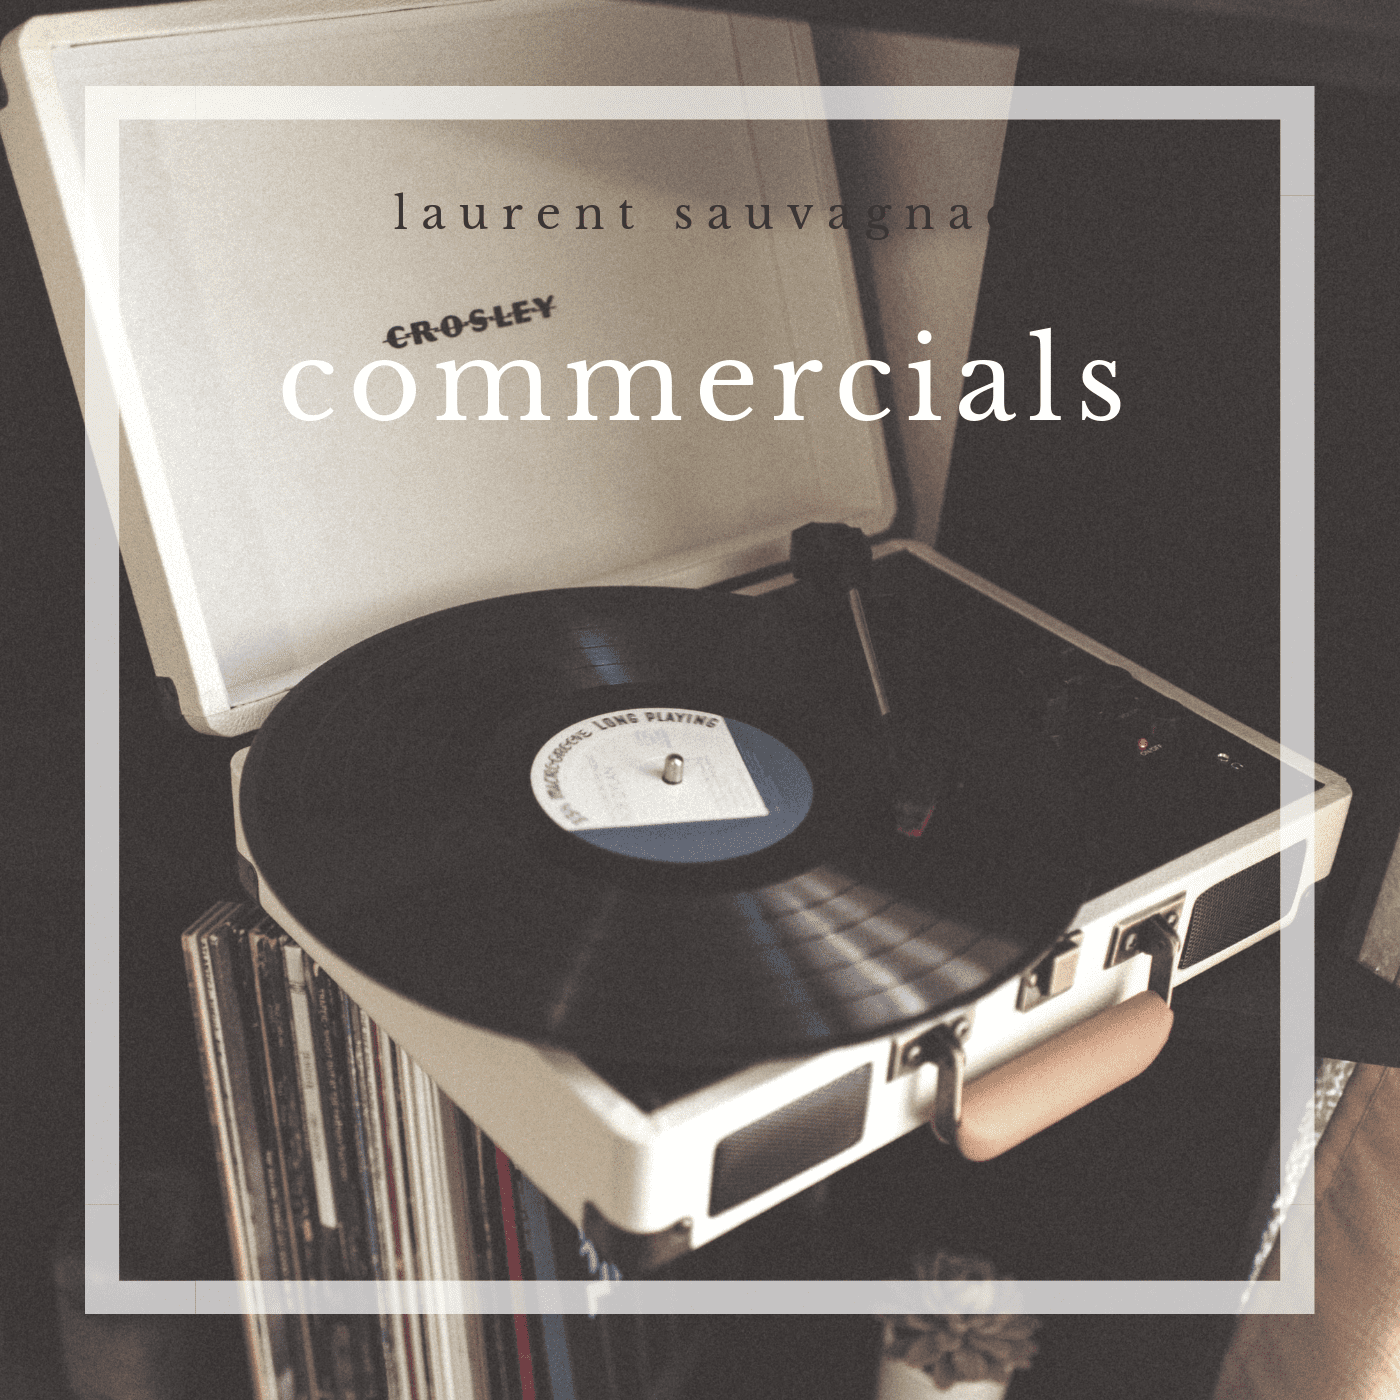 When you need music, we've got the sound that fits